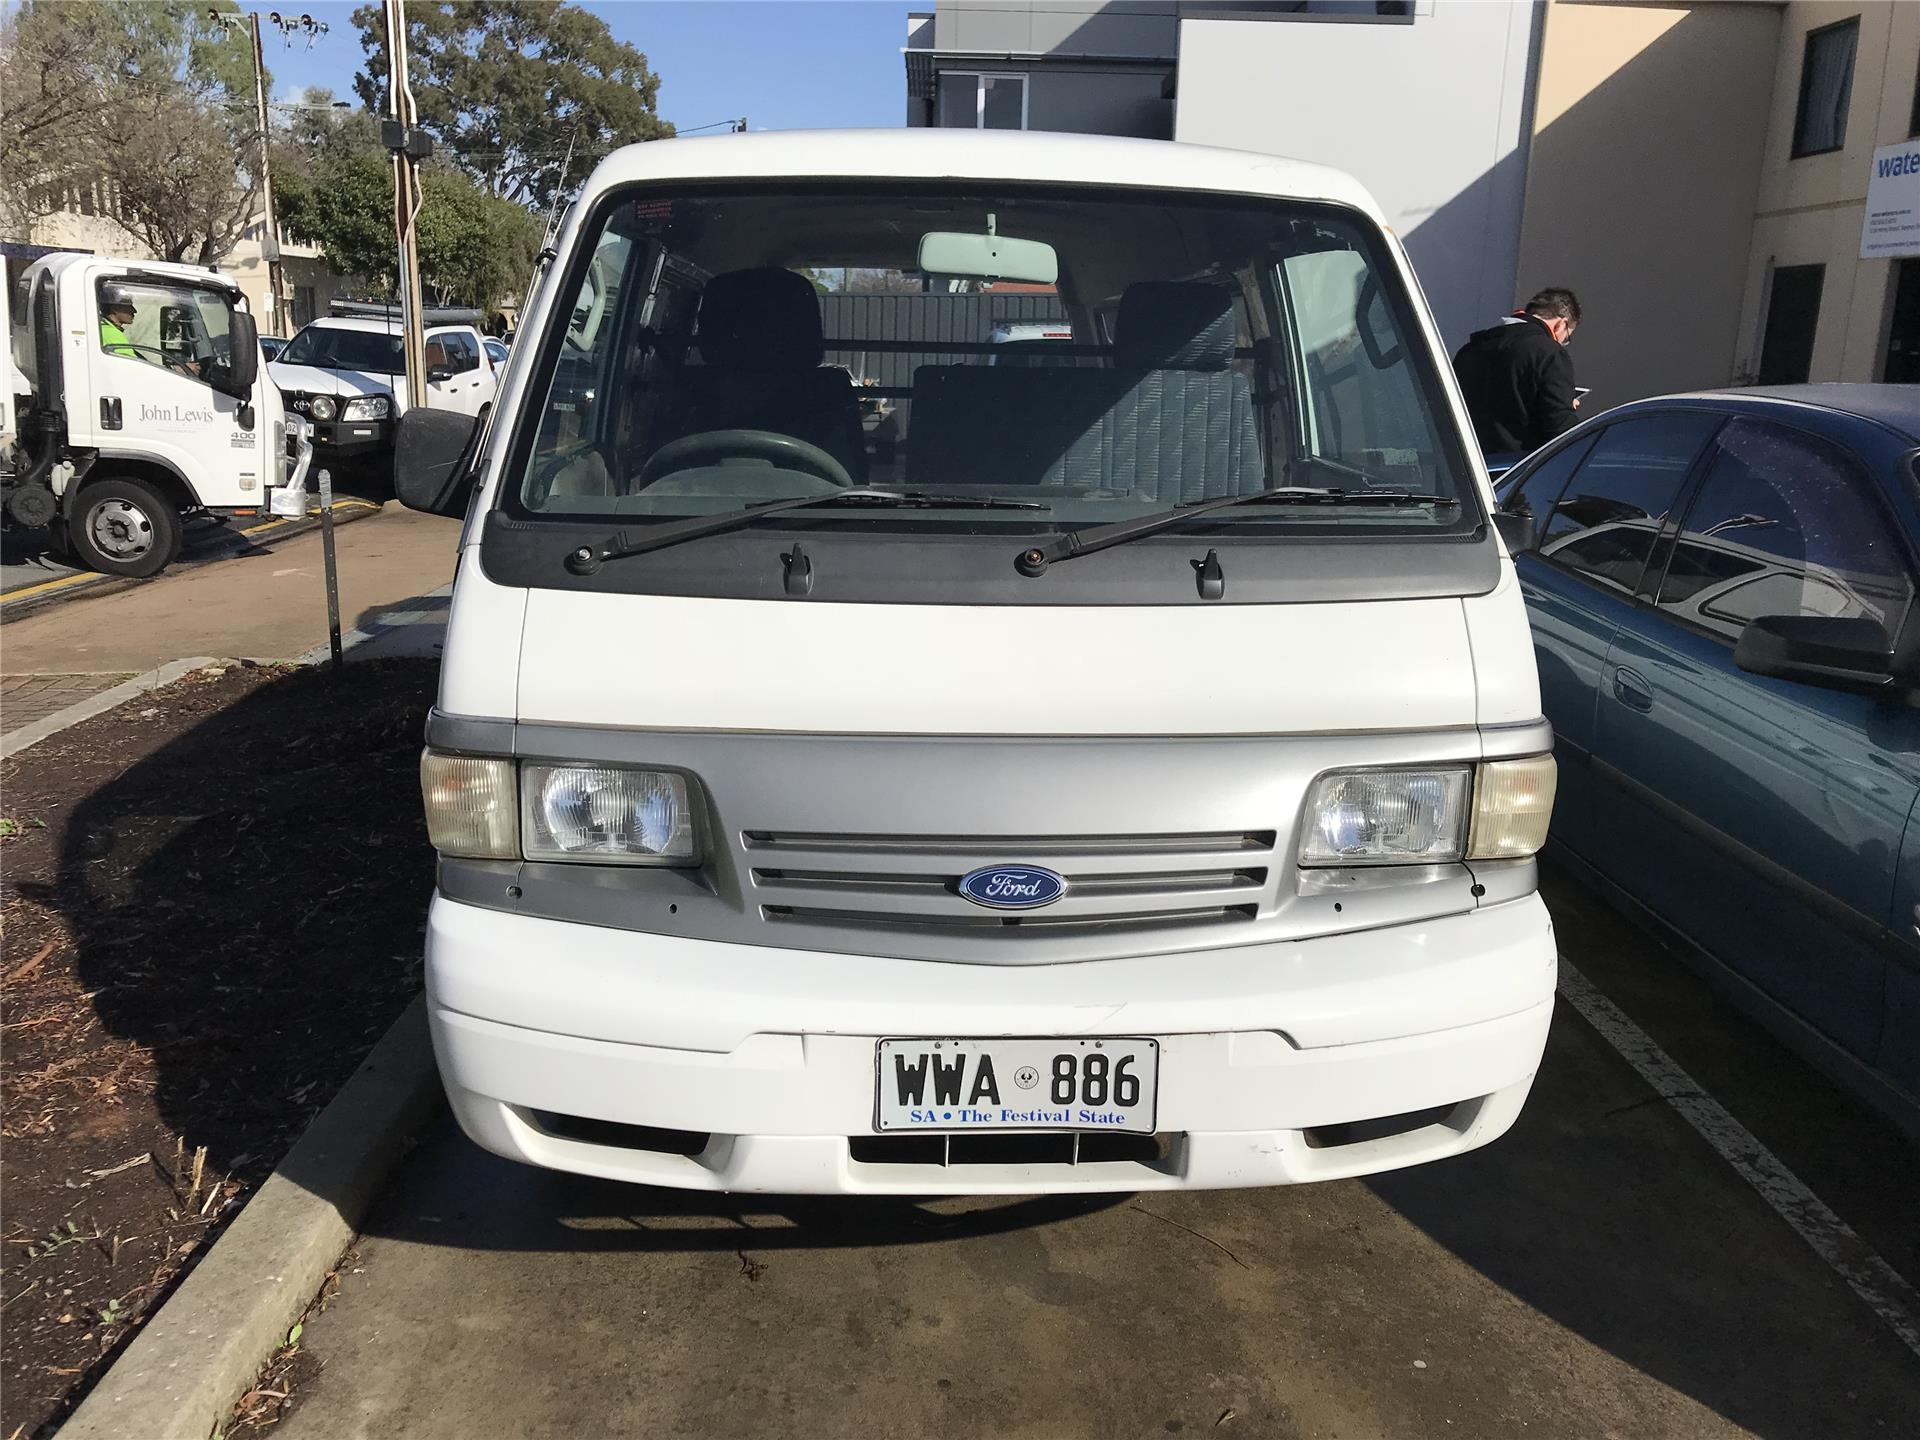 Van, Ford Econovan (02/02), Petrol, Manual, 196106km Indicated, White  Registration: Wwa-886(Exp.11/08/18), VIN Number: Jc0aaaSGME2L15604